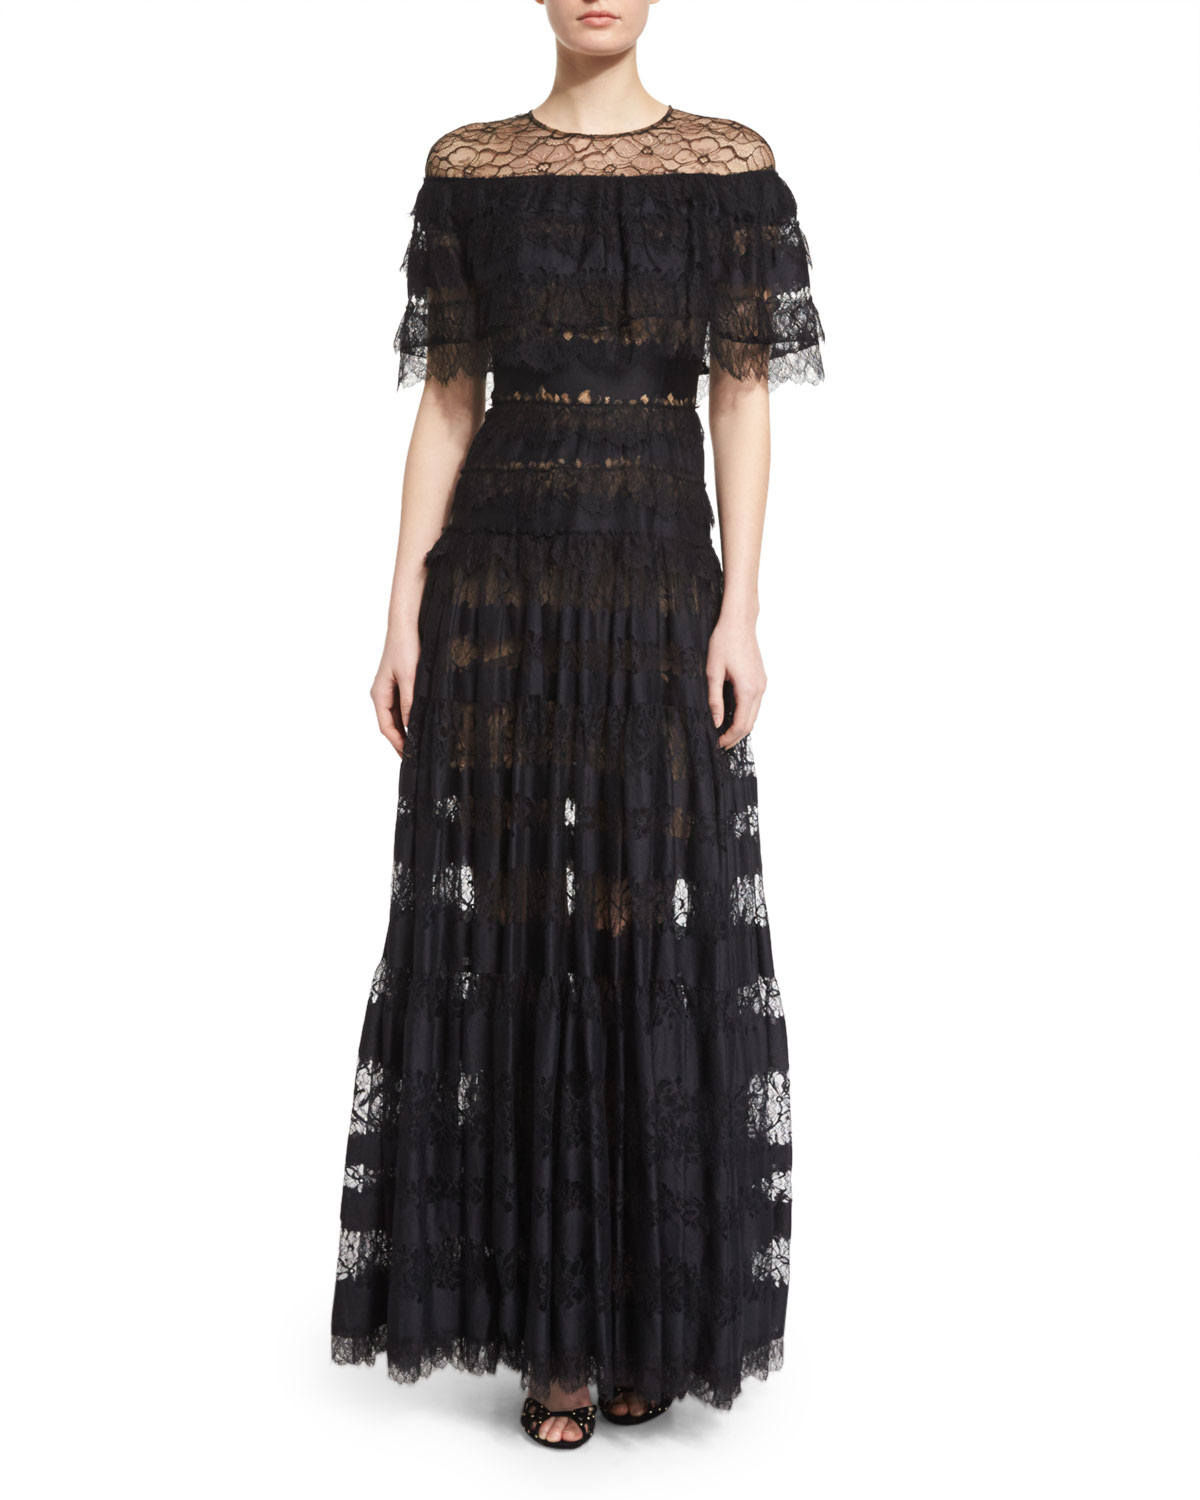 48a2360f8c Elie Saab Illusion Off-The-Shoulder Tiered Gown